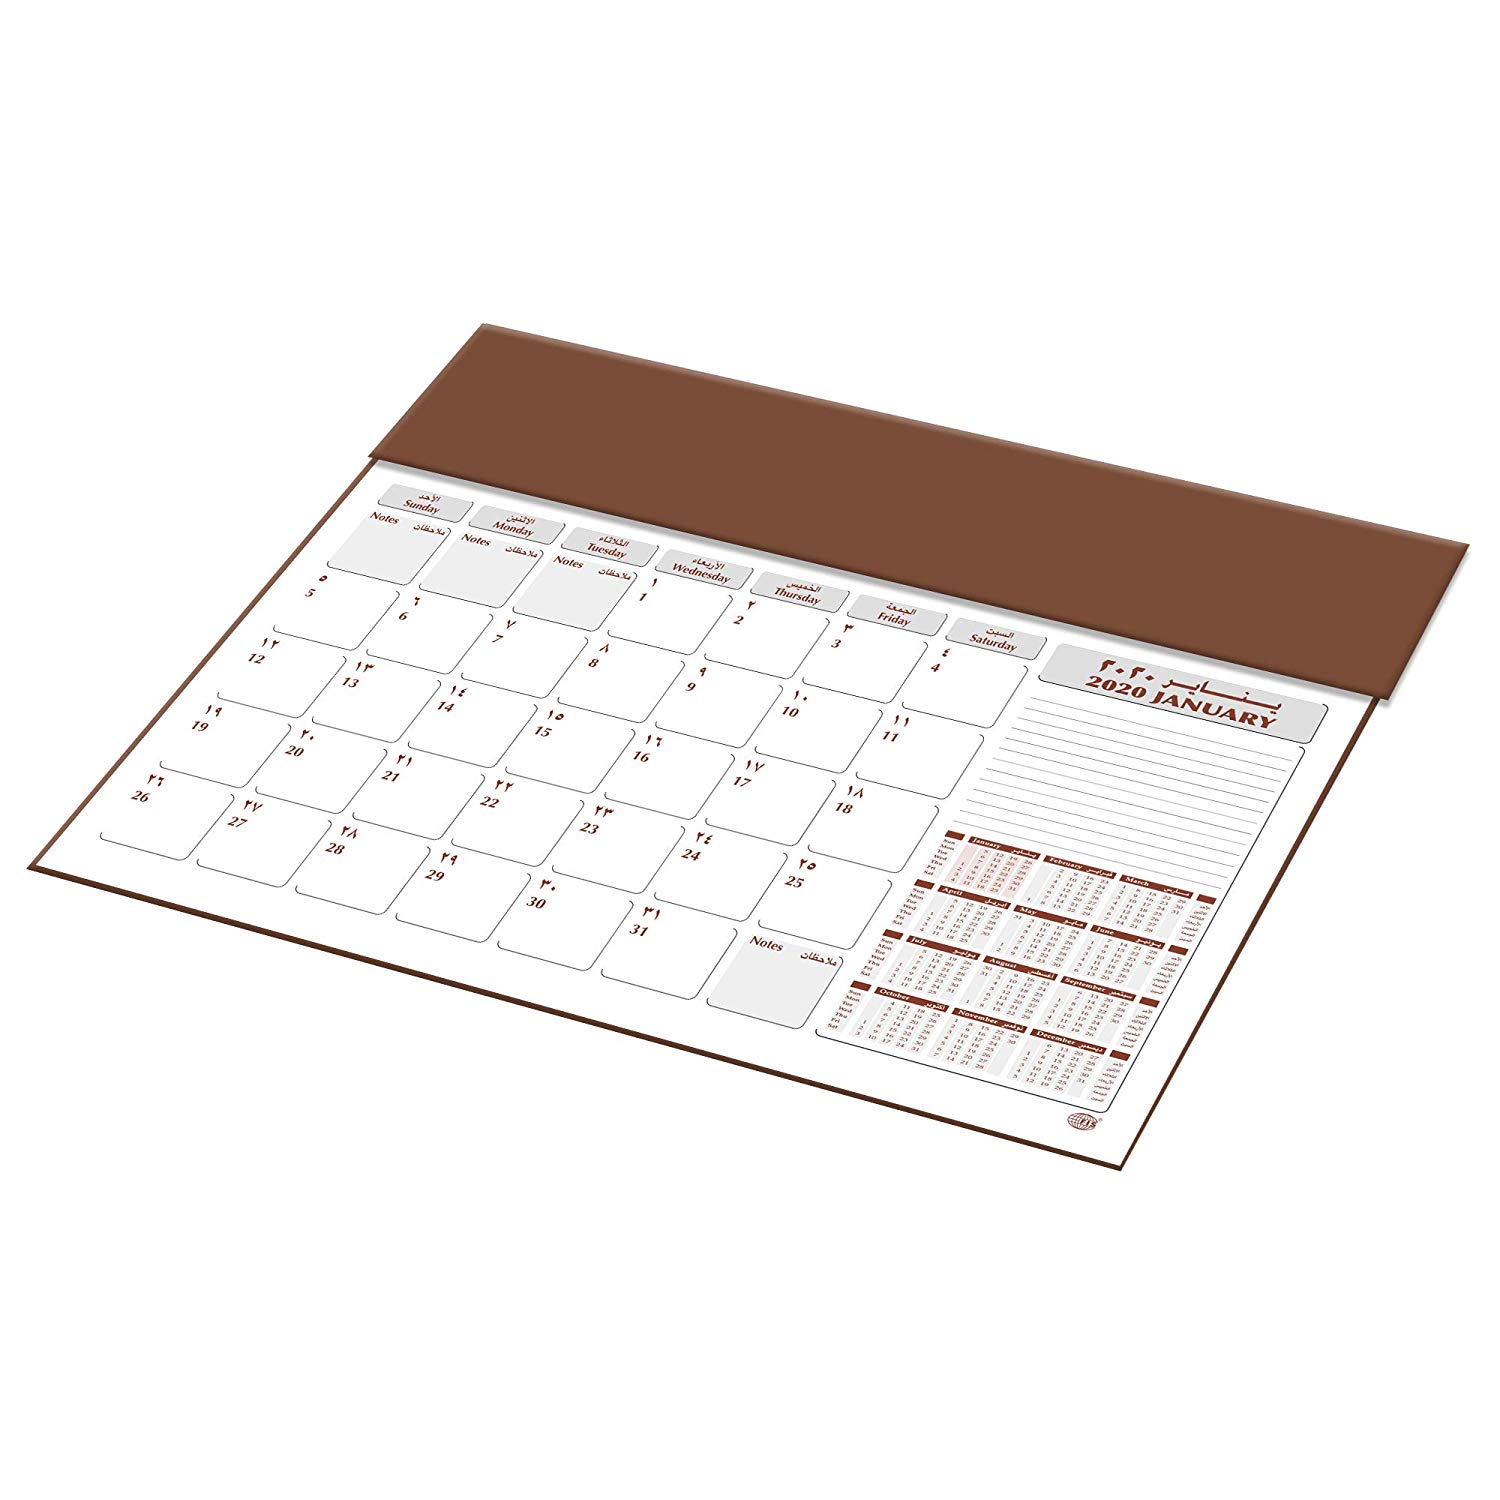 FIS FSDK2AE20BR 2020 Year Planner (Arabic/English) Italian PU w/ Desk Blotter 490x340mm - Brown